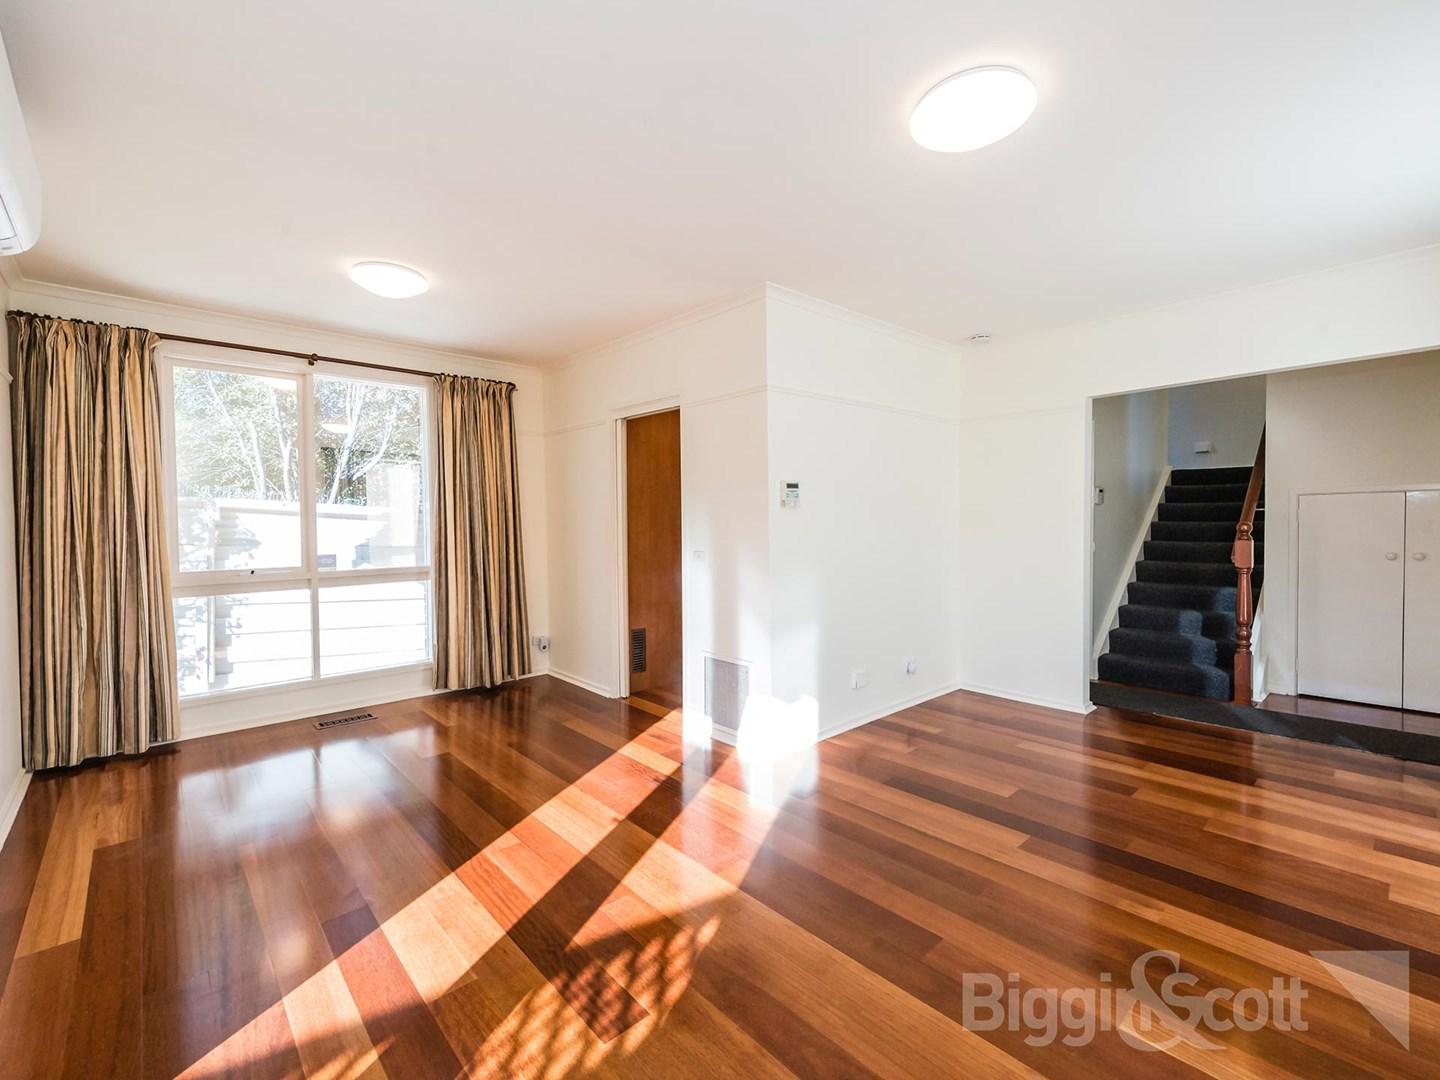 558 Nepean Highway Service Road, Brighton Vic 3186  House